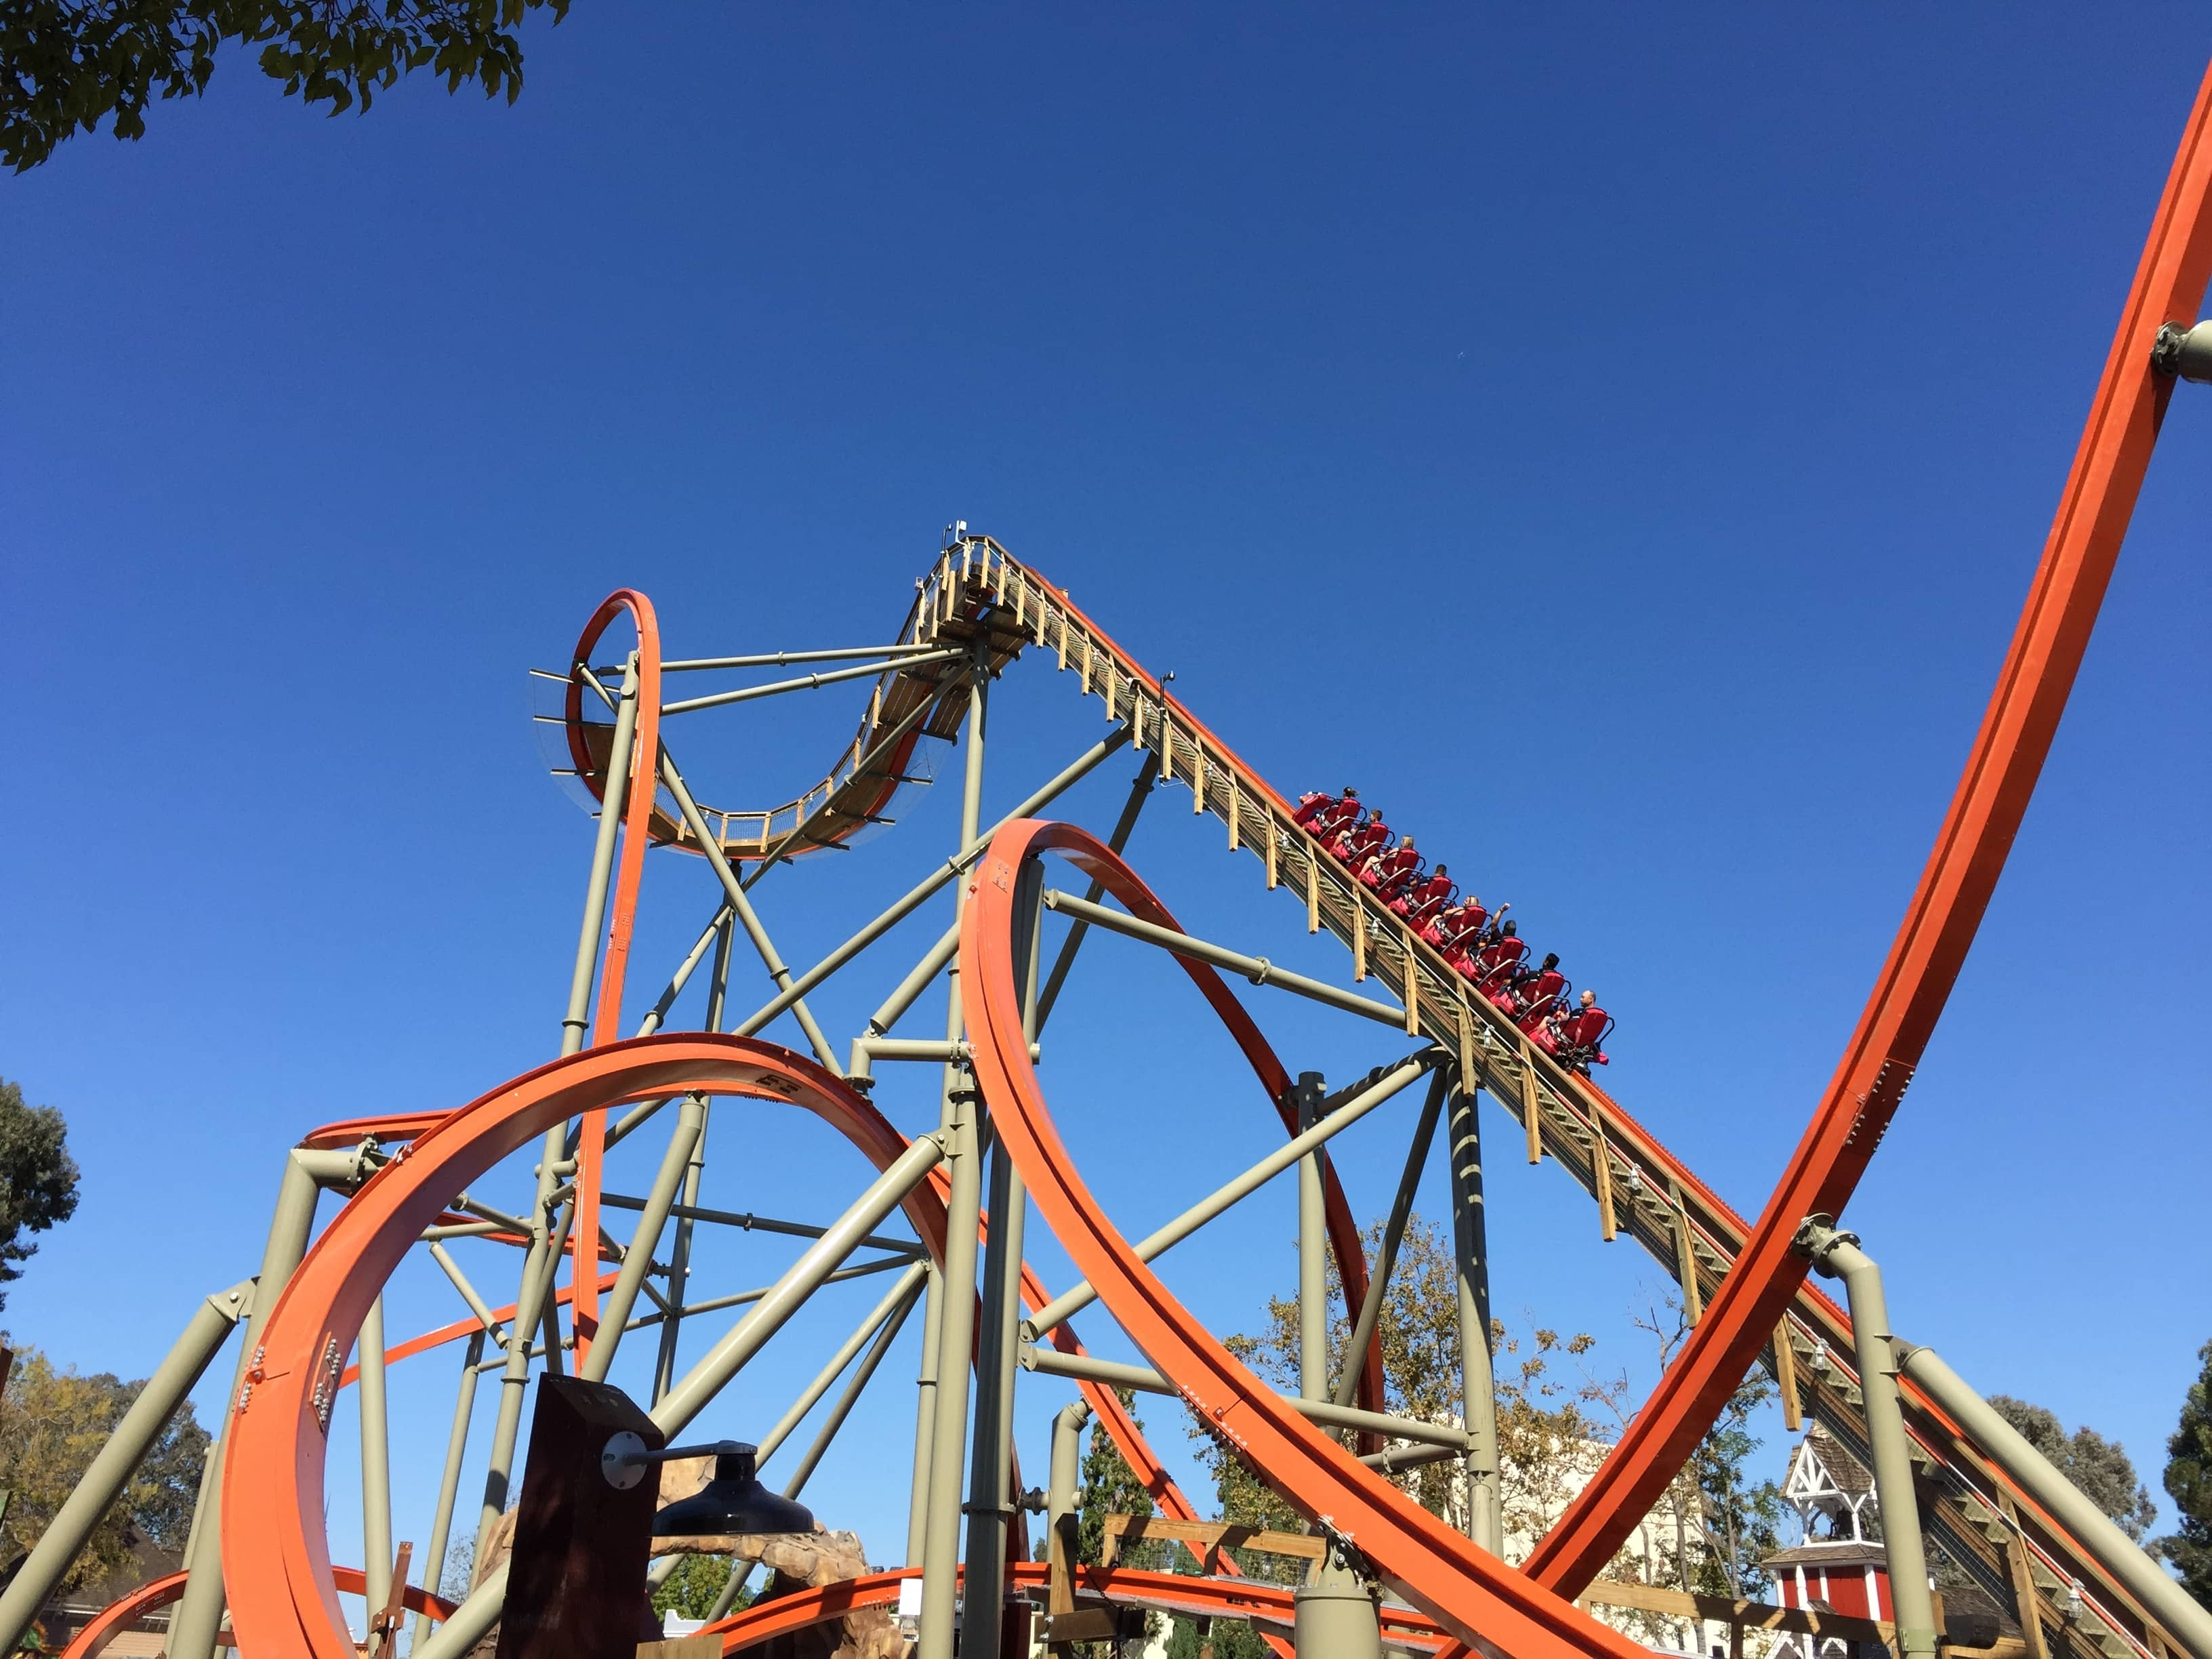 RailBlazer is a steel roller coaster located at Great America in Northern California